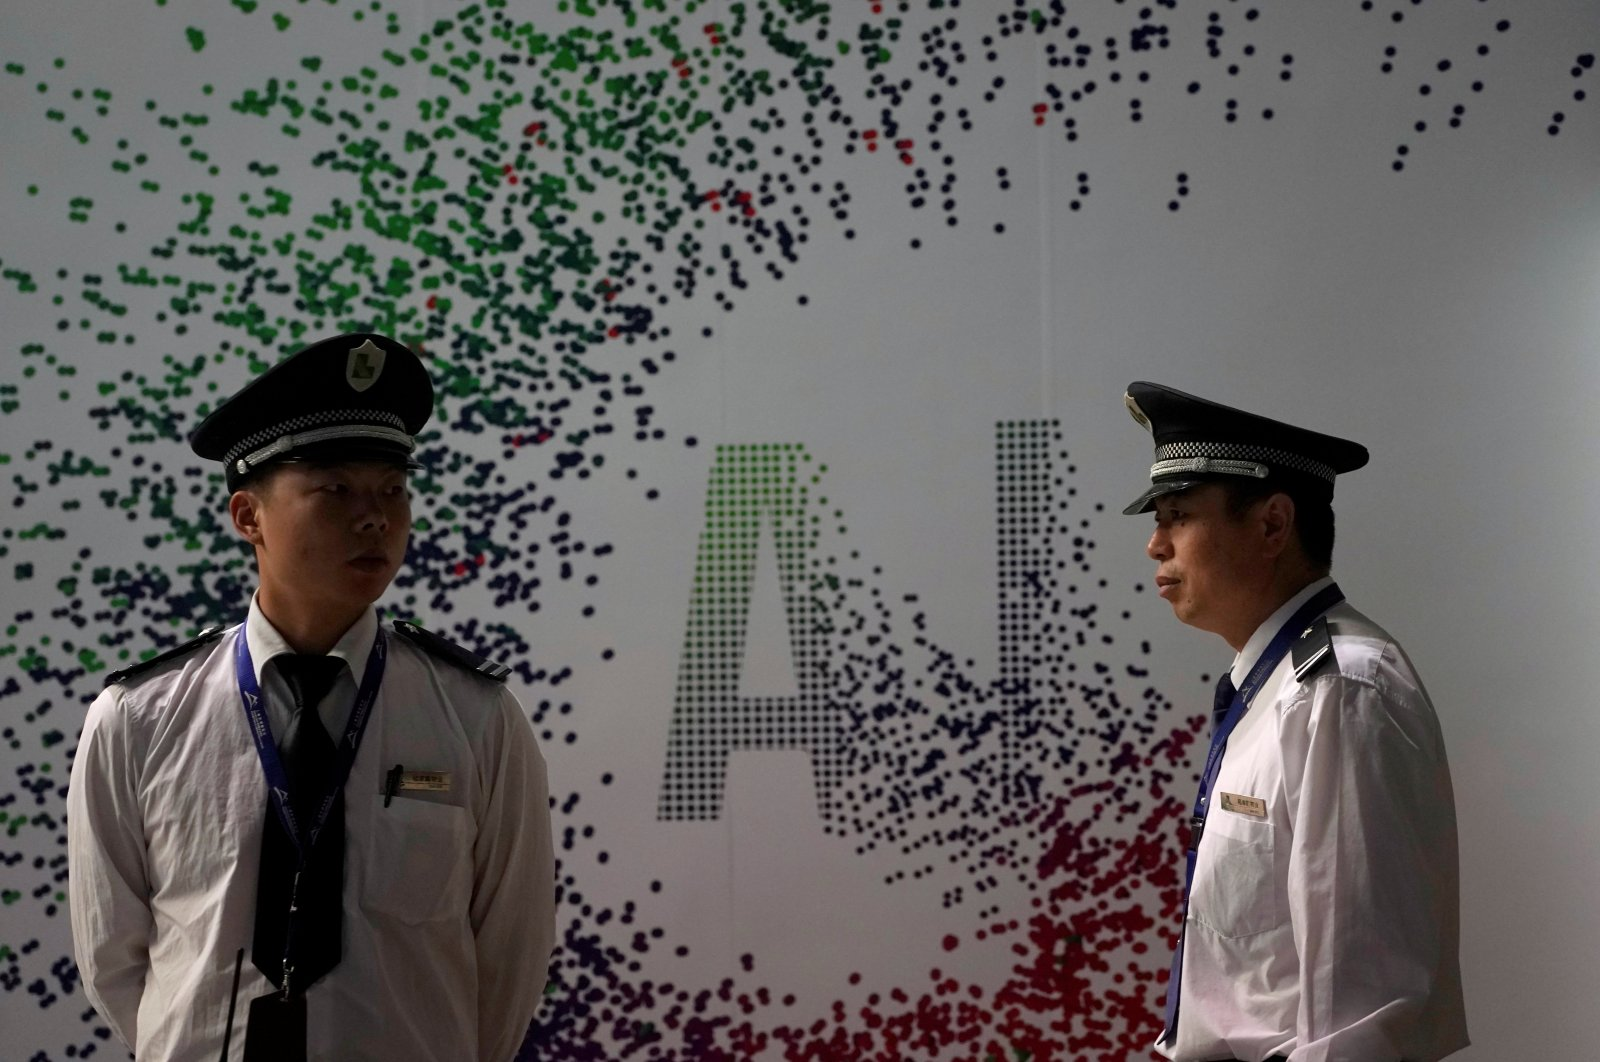 Security officers keep watch in front of an AI (Artificial Intelligence) sign at the annual Huawei Connect event in Shanghai, China, Sept. 18, 2019. (Reuters Photo)